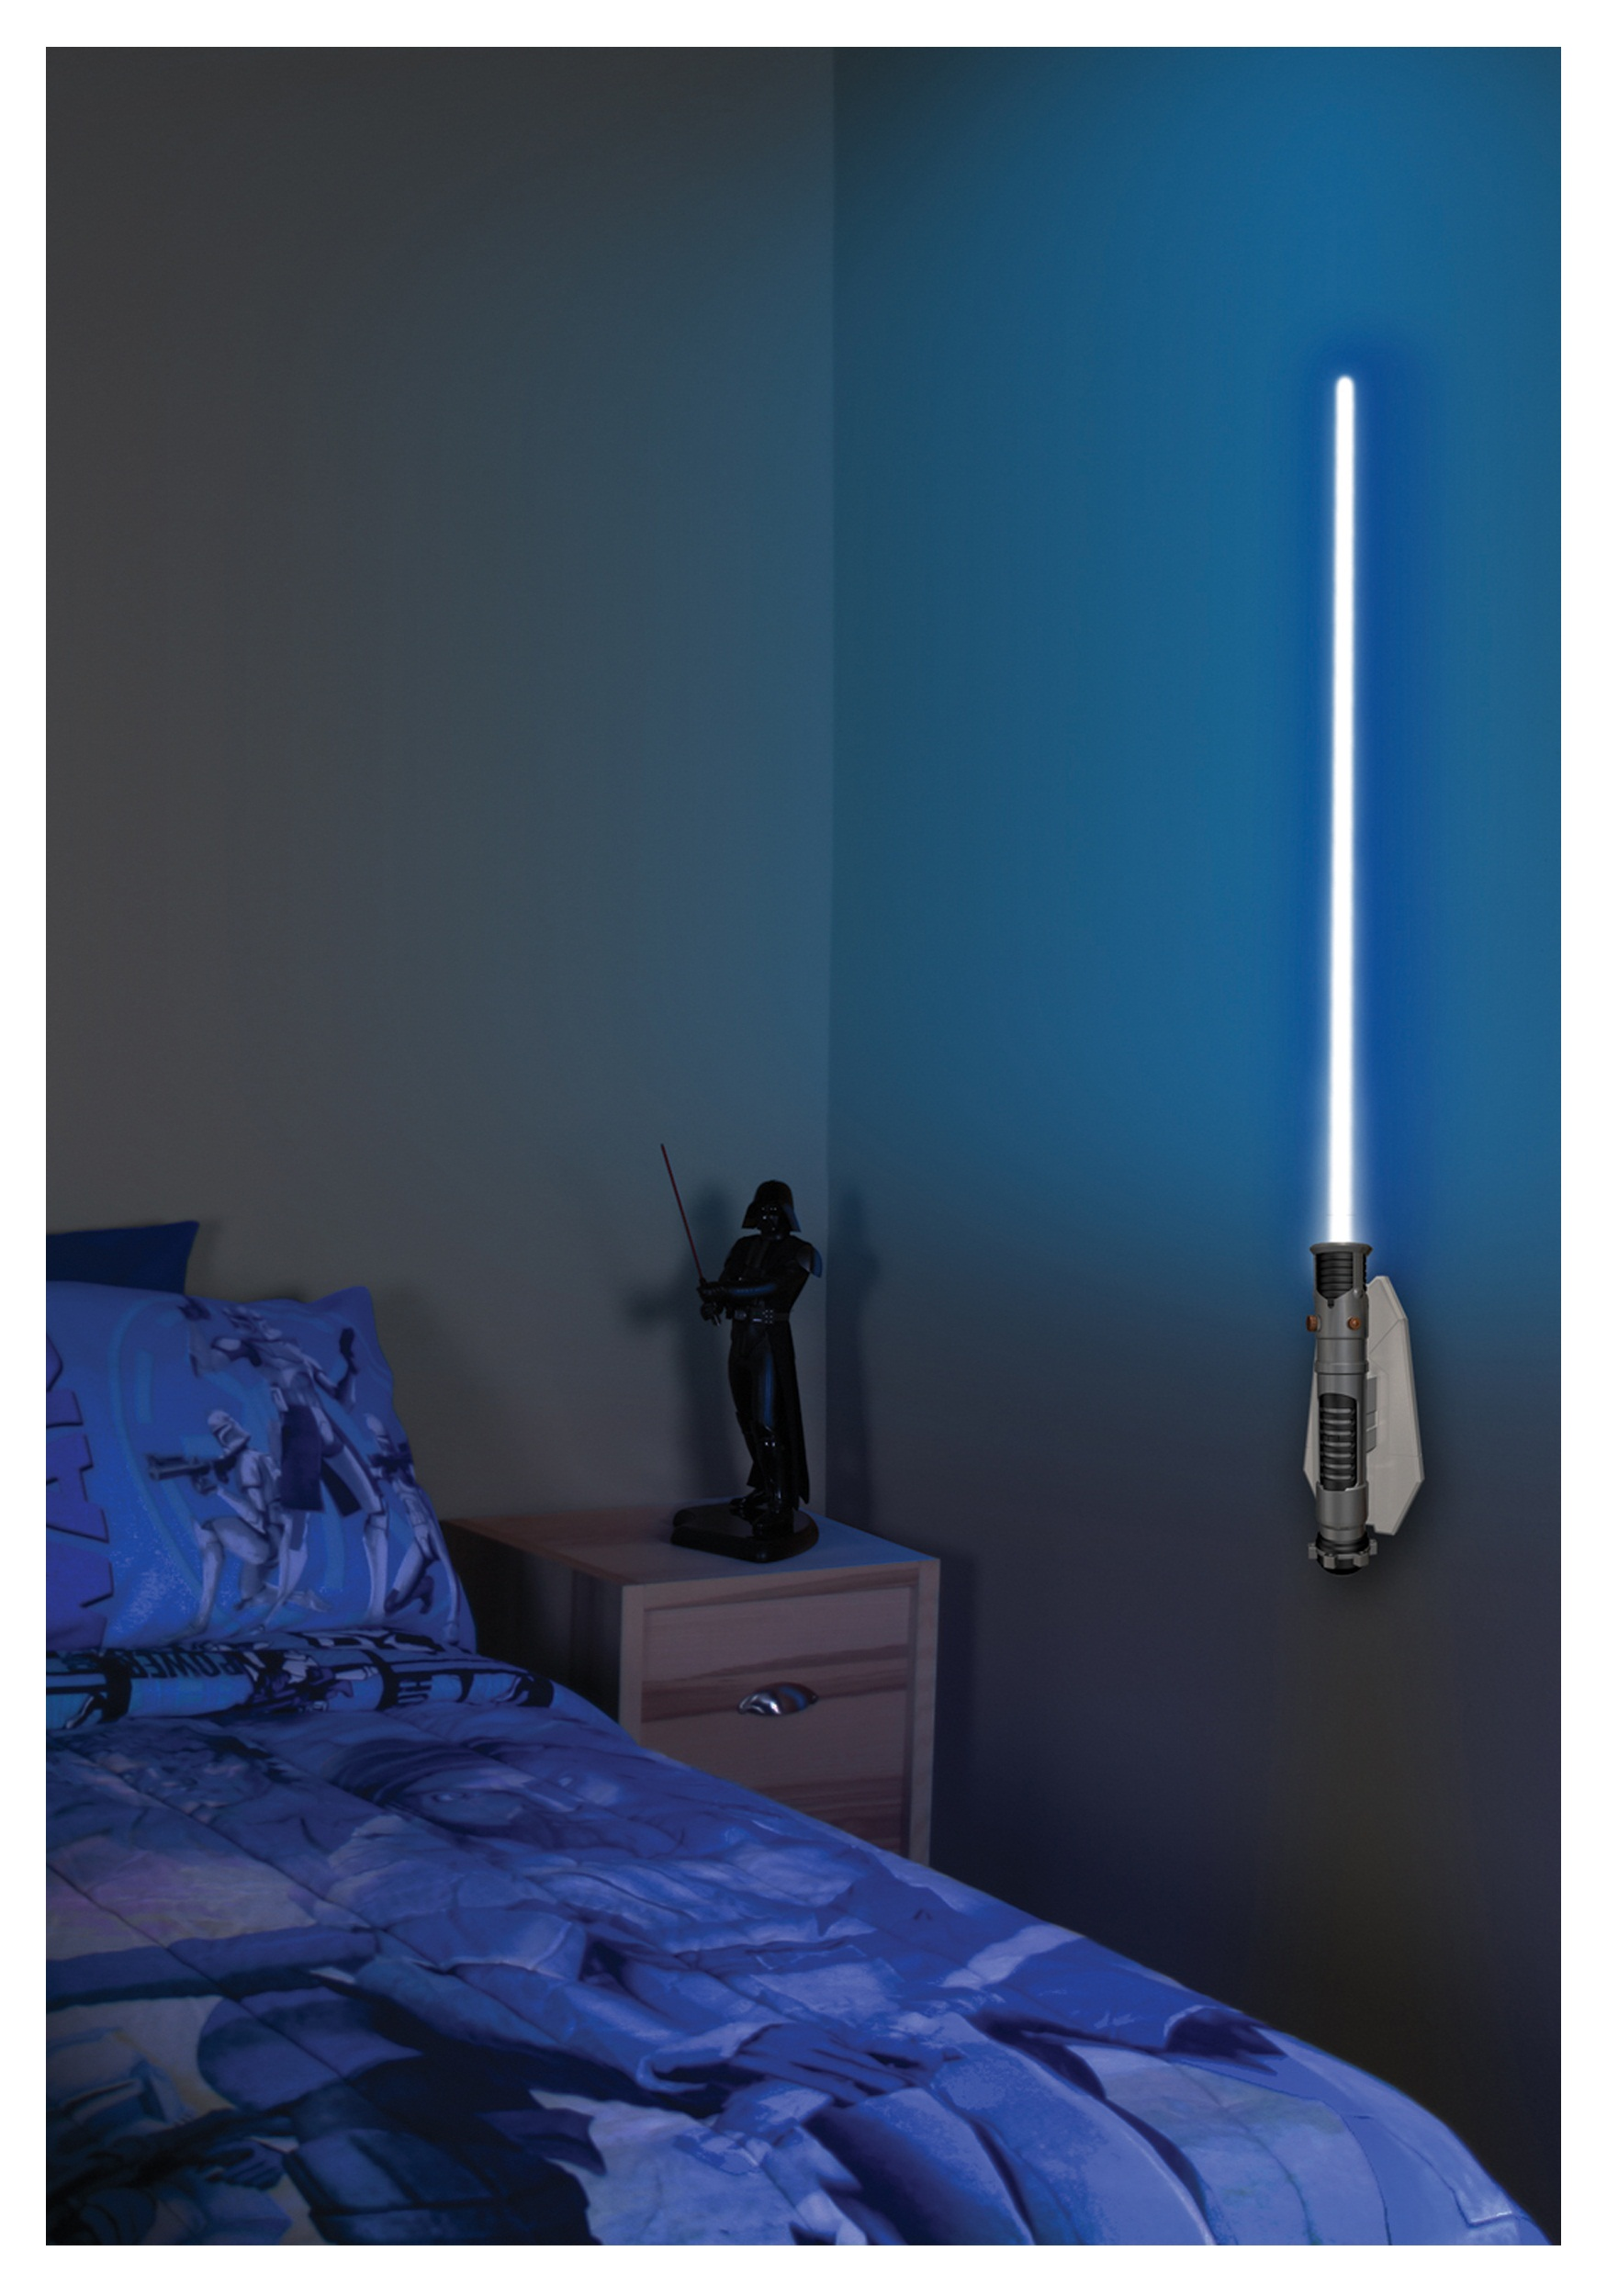 Room Light Obi Wan Kenobi Lightsaber